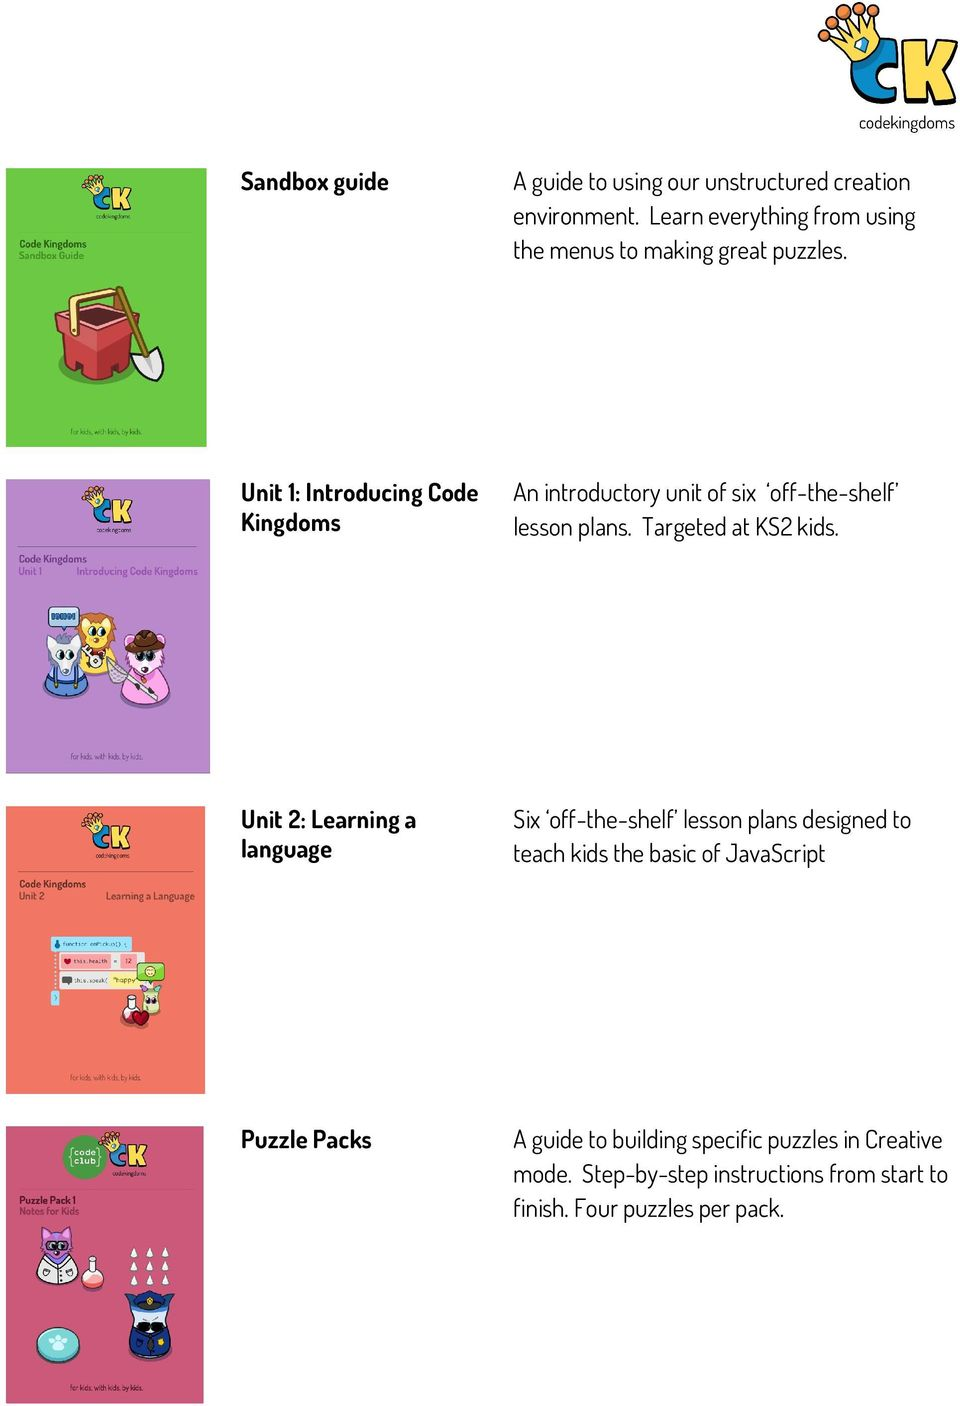 Unit 1: Introducing Code Kingdoms An introductory unit of six off-the-shelf lesson plans. Targeted at KS2 kids.